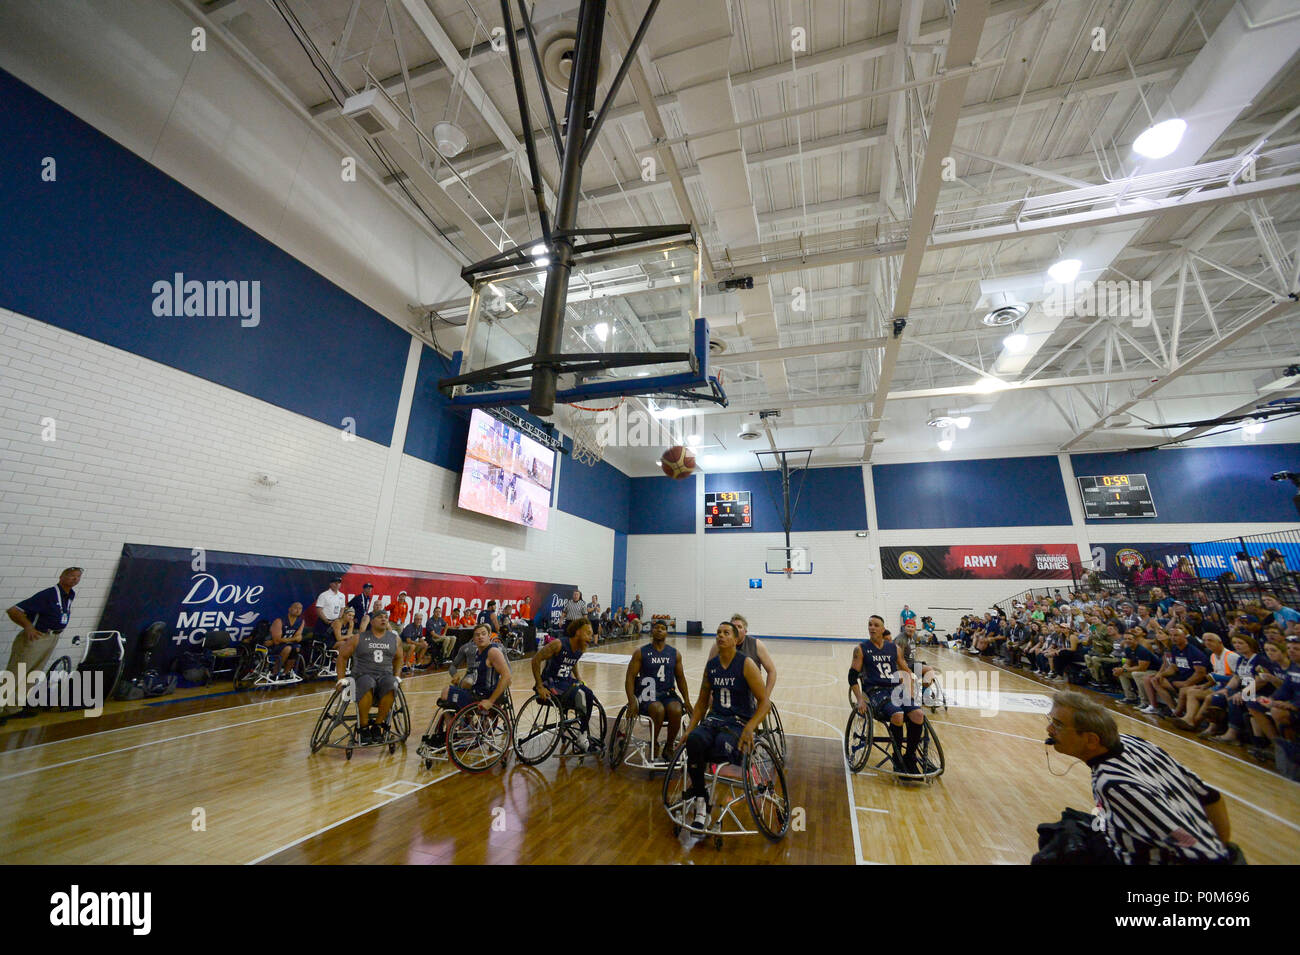 Team SOCOM plays Navy in wheelchair basketball during the 2018 Warrior Games held at the Air Force Academy in Colorado Springs June 4, 2018. Several members of Team SOCOM advanced to the finals. Created in 2010, the DoD Warrior Games introduce wounded, ill and injured service members and veterans to Paralympic-style sports. Warrior Games showcases the resilient spirit of today's wounded, ill or injured service members from all branches of the military. These athletes have overcome significant physical and behavioral injuries and prove that life can continue after becoming wounded, ill or injur - Stock Image